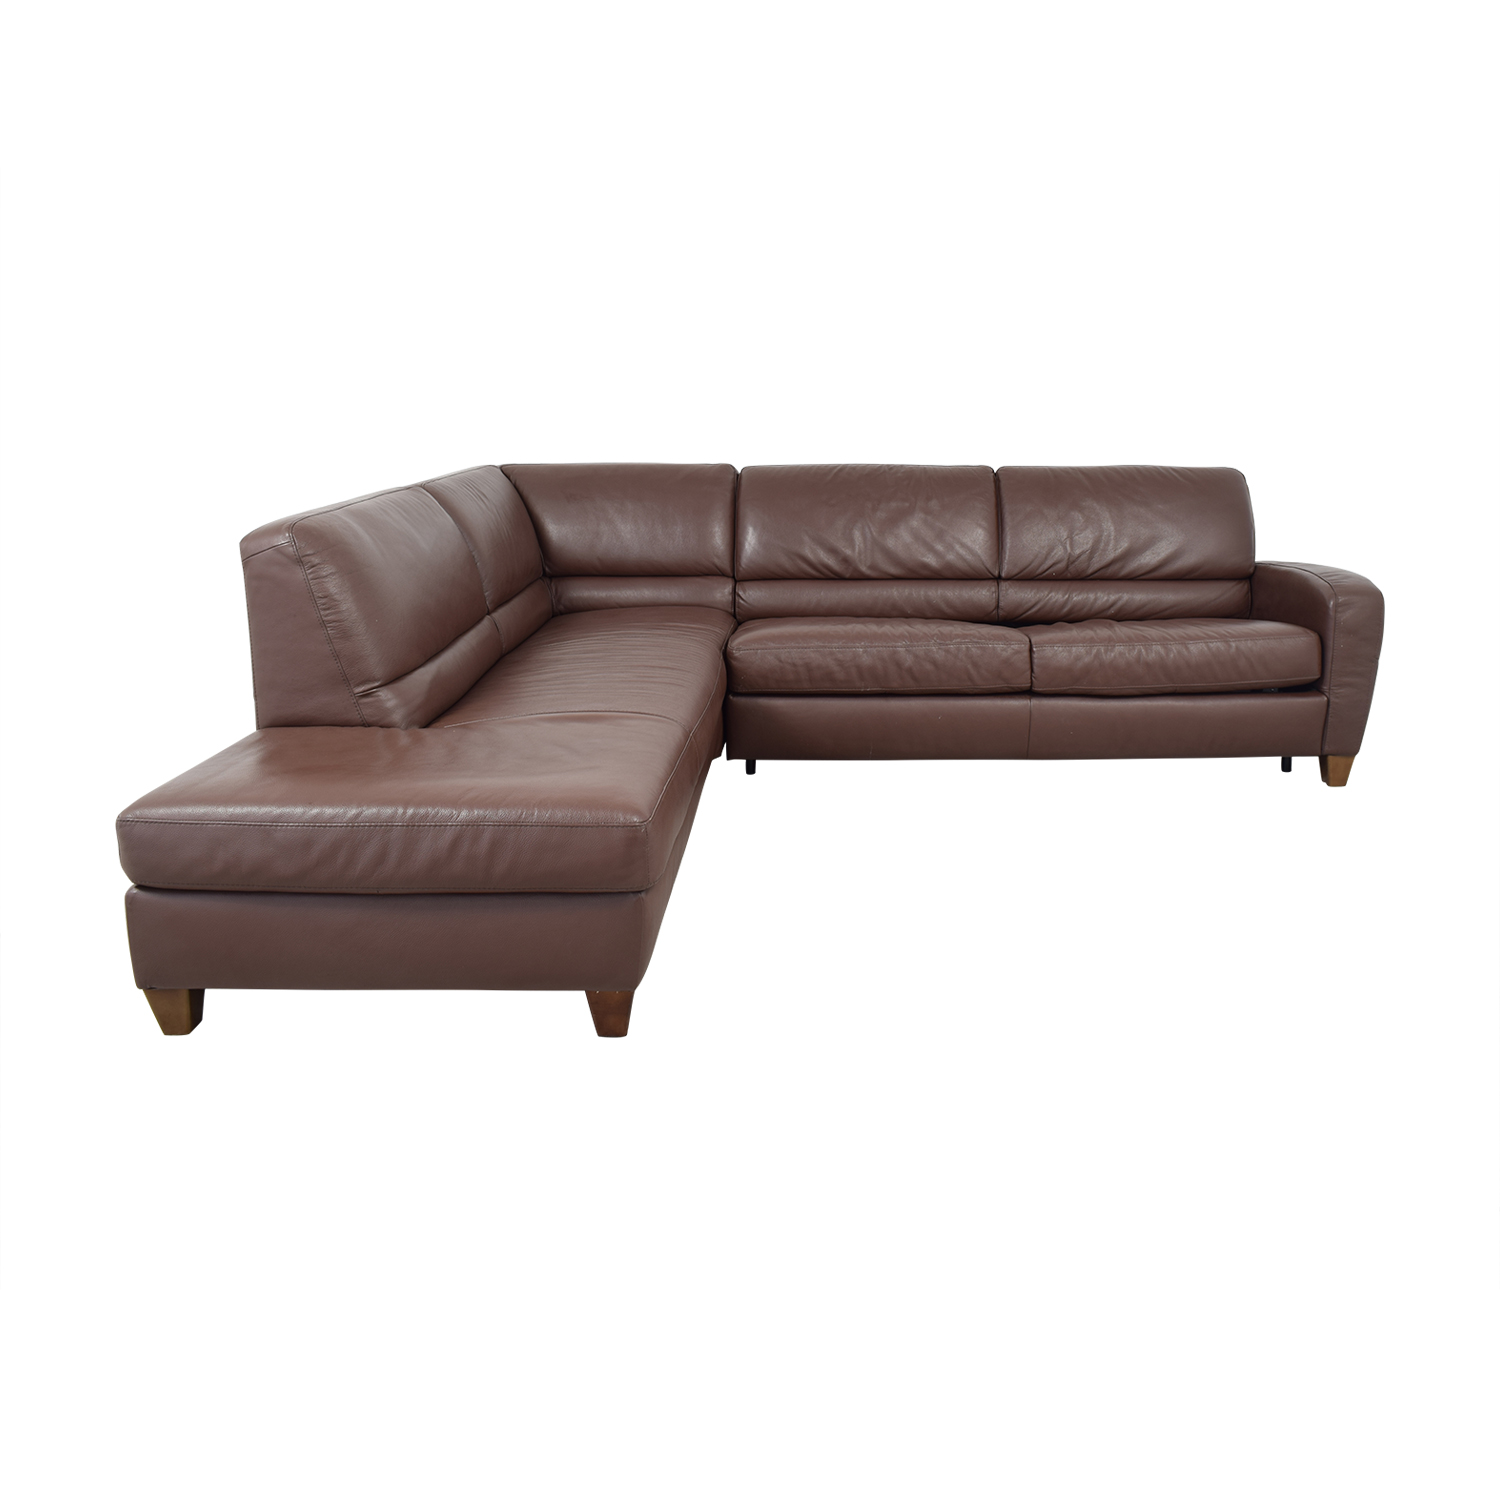 shop Natuzzi Roya Chaise Sectional Sofa Bed Natuzzi Sofas